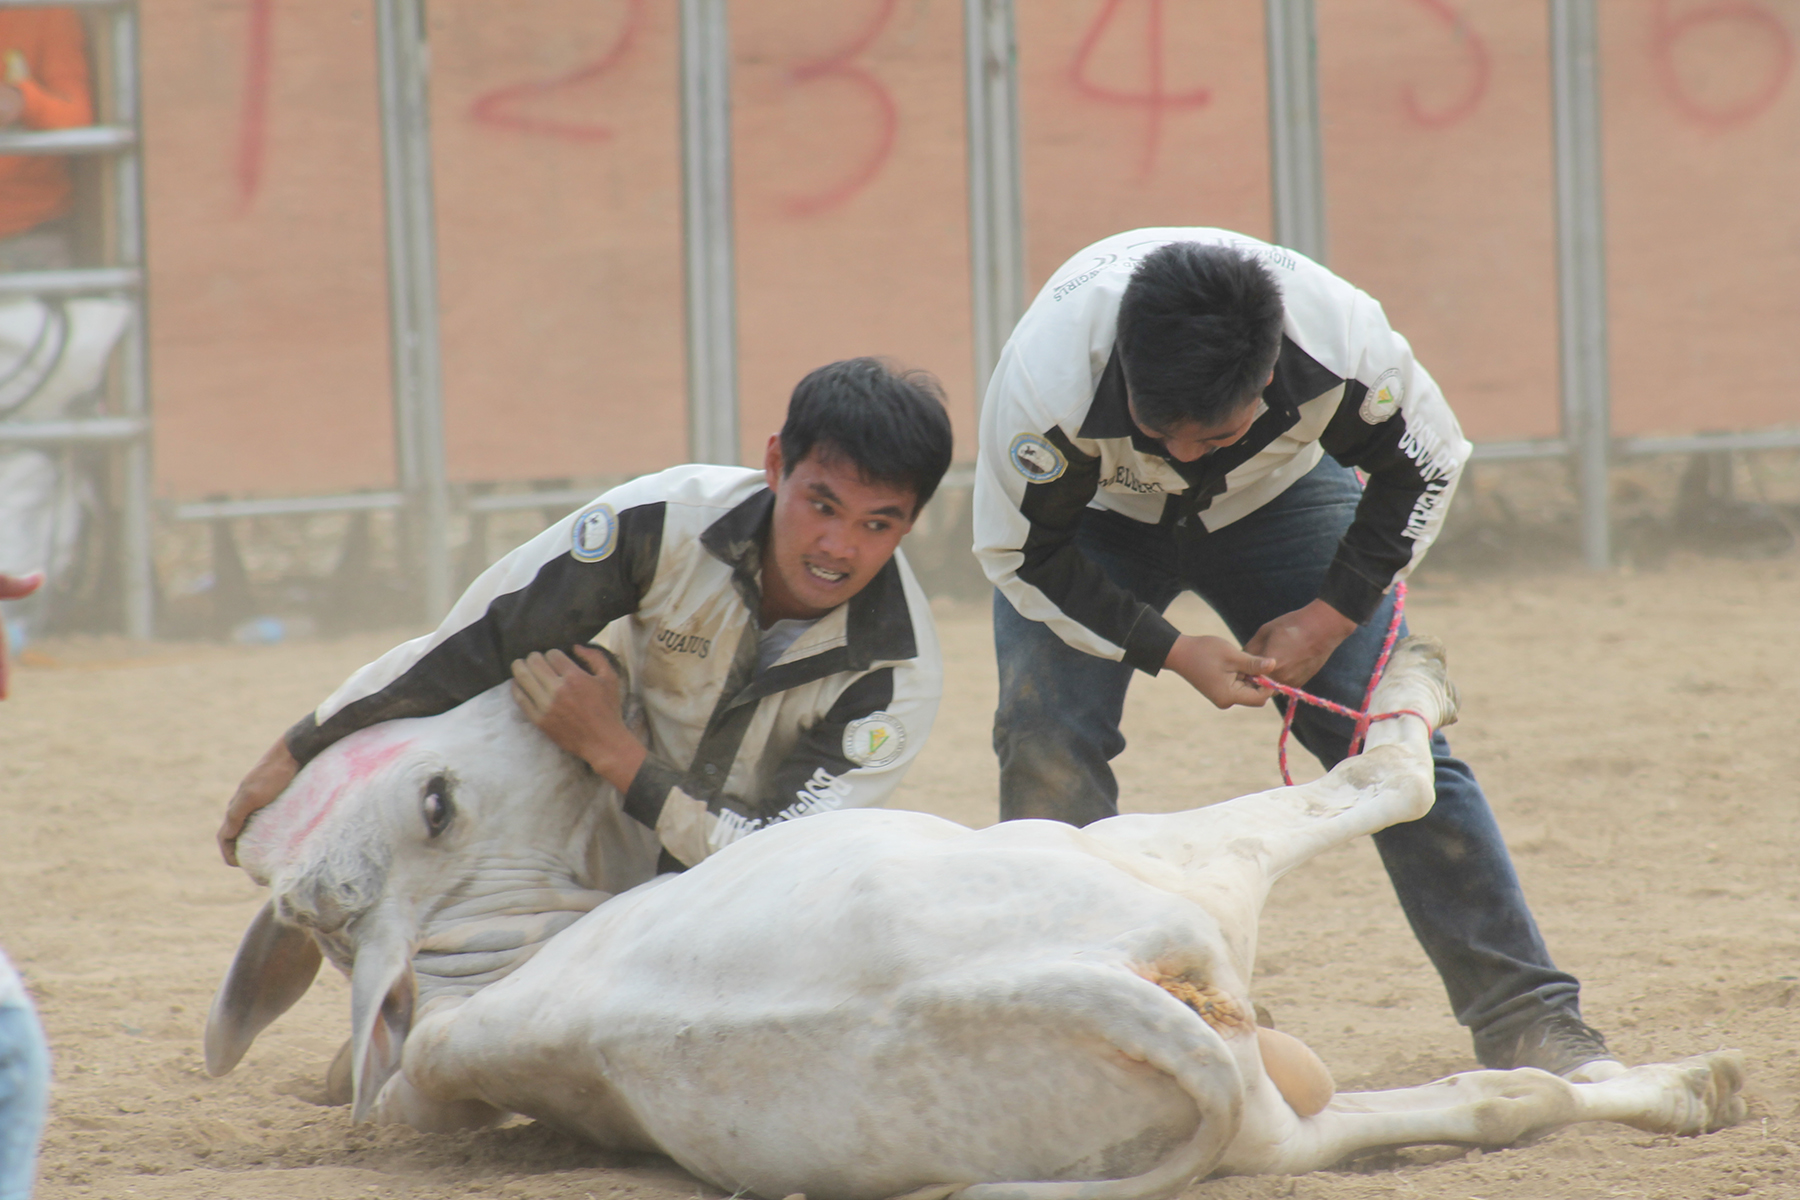 LOCAL COWBOYS JULIUS SUMINGGAO AND ANGELBERT VIDAL bravely tackle down a horned opponent using only their brute strength during the two-person carambola competition in the recently concluded Kannawidan Rodeo at Tamag Grounds, Vigan City, Ilocos Sur. (Photo by Dominic Binay-an)